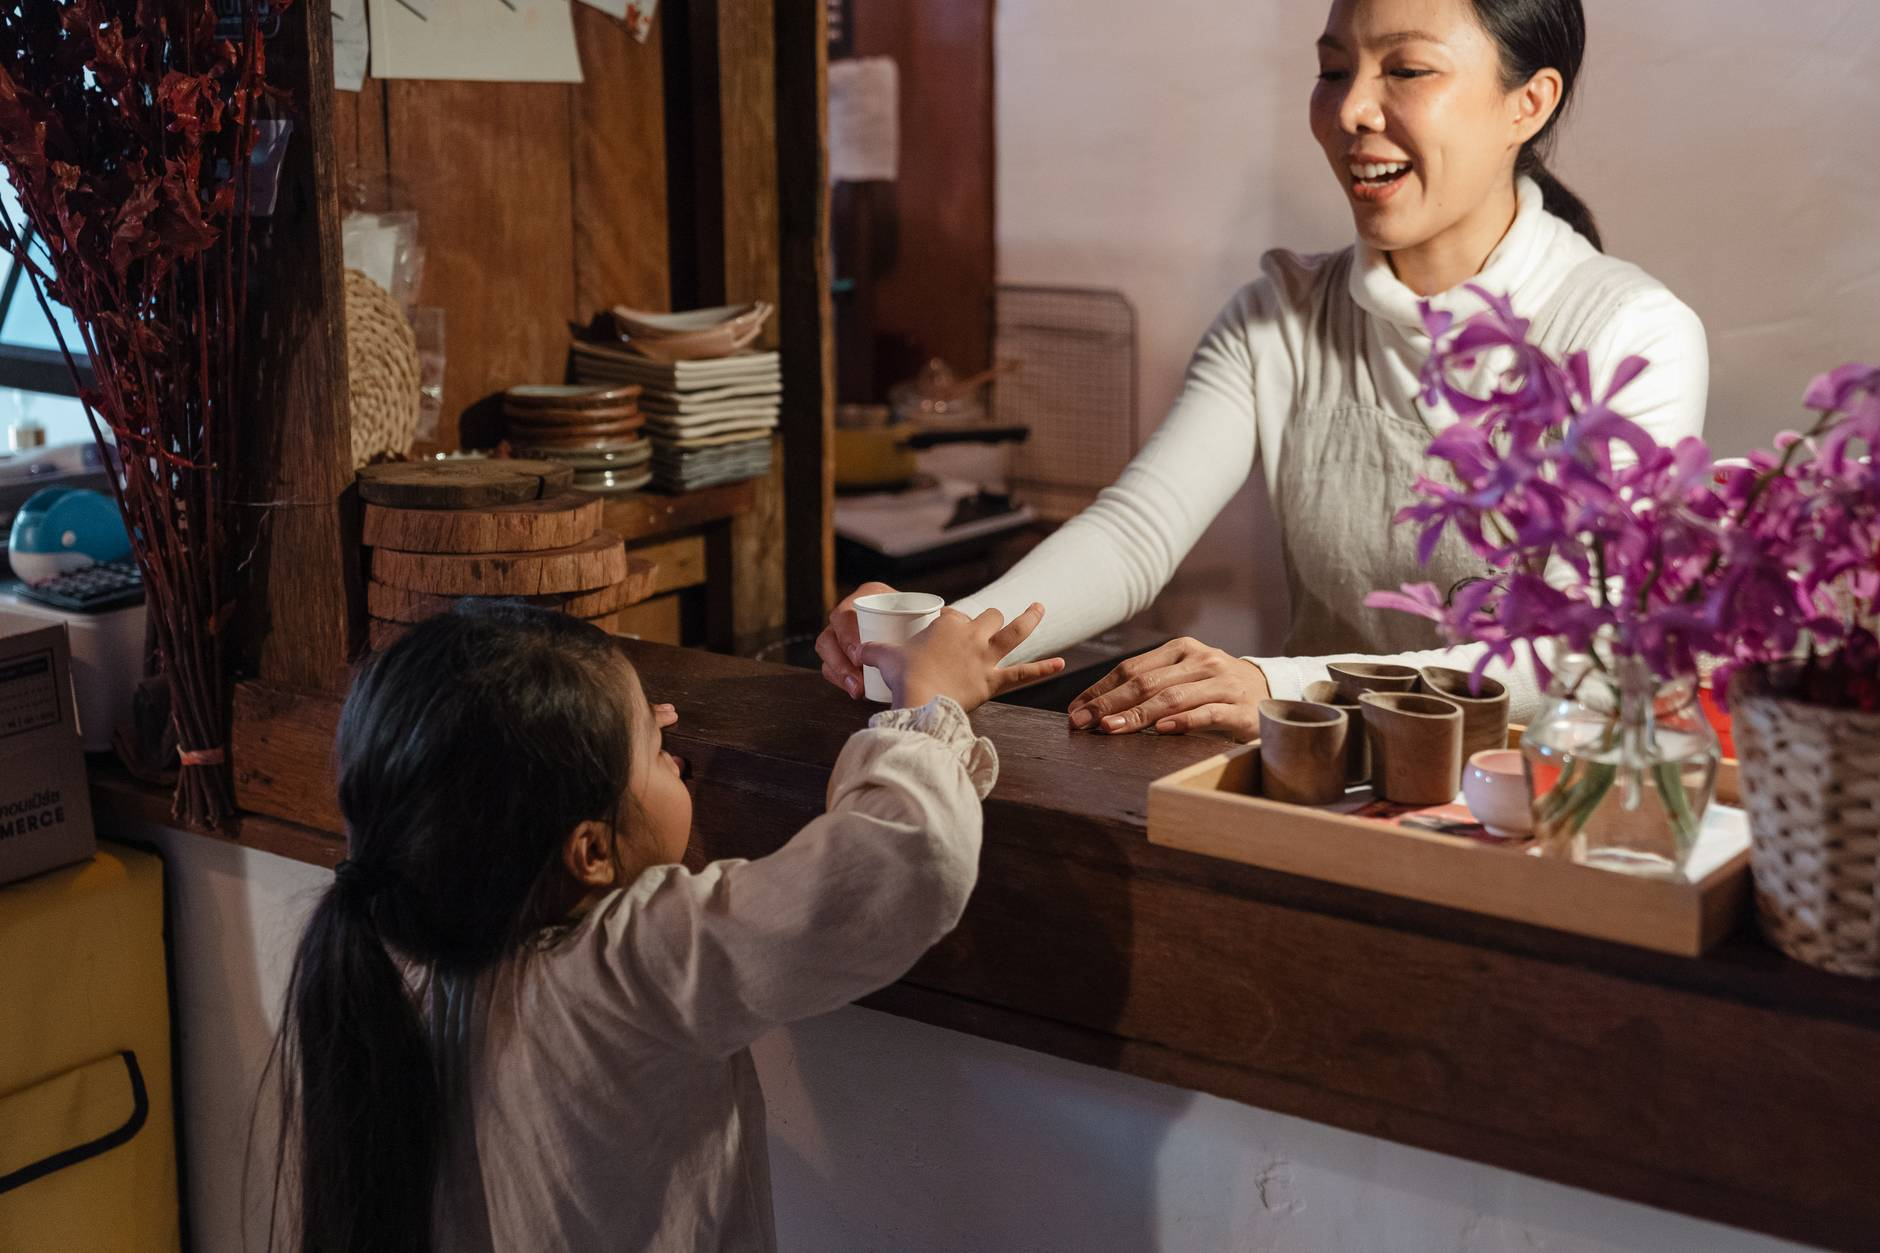 crop ethnic mother serving little girl glass of refreshing drink